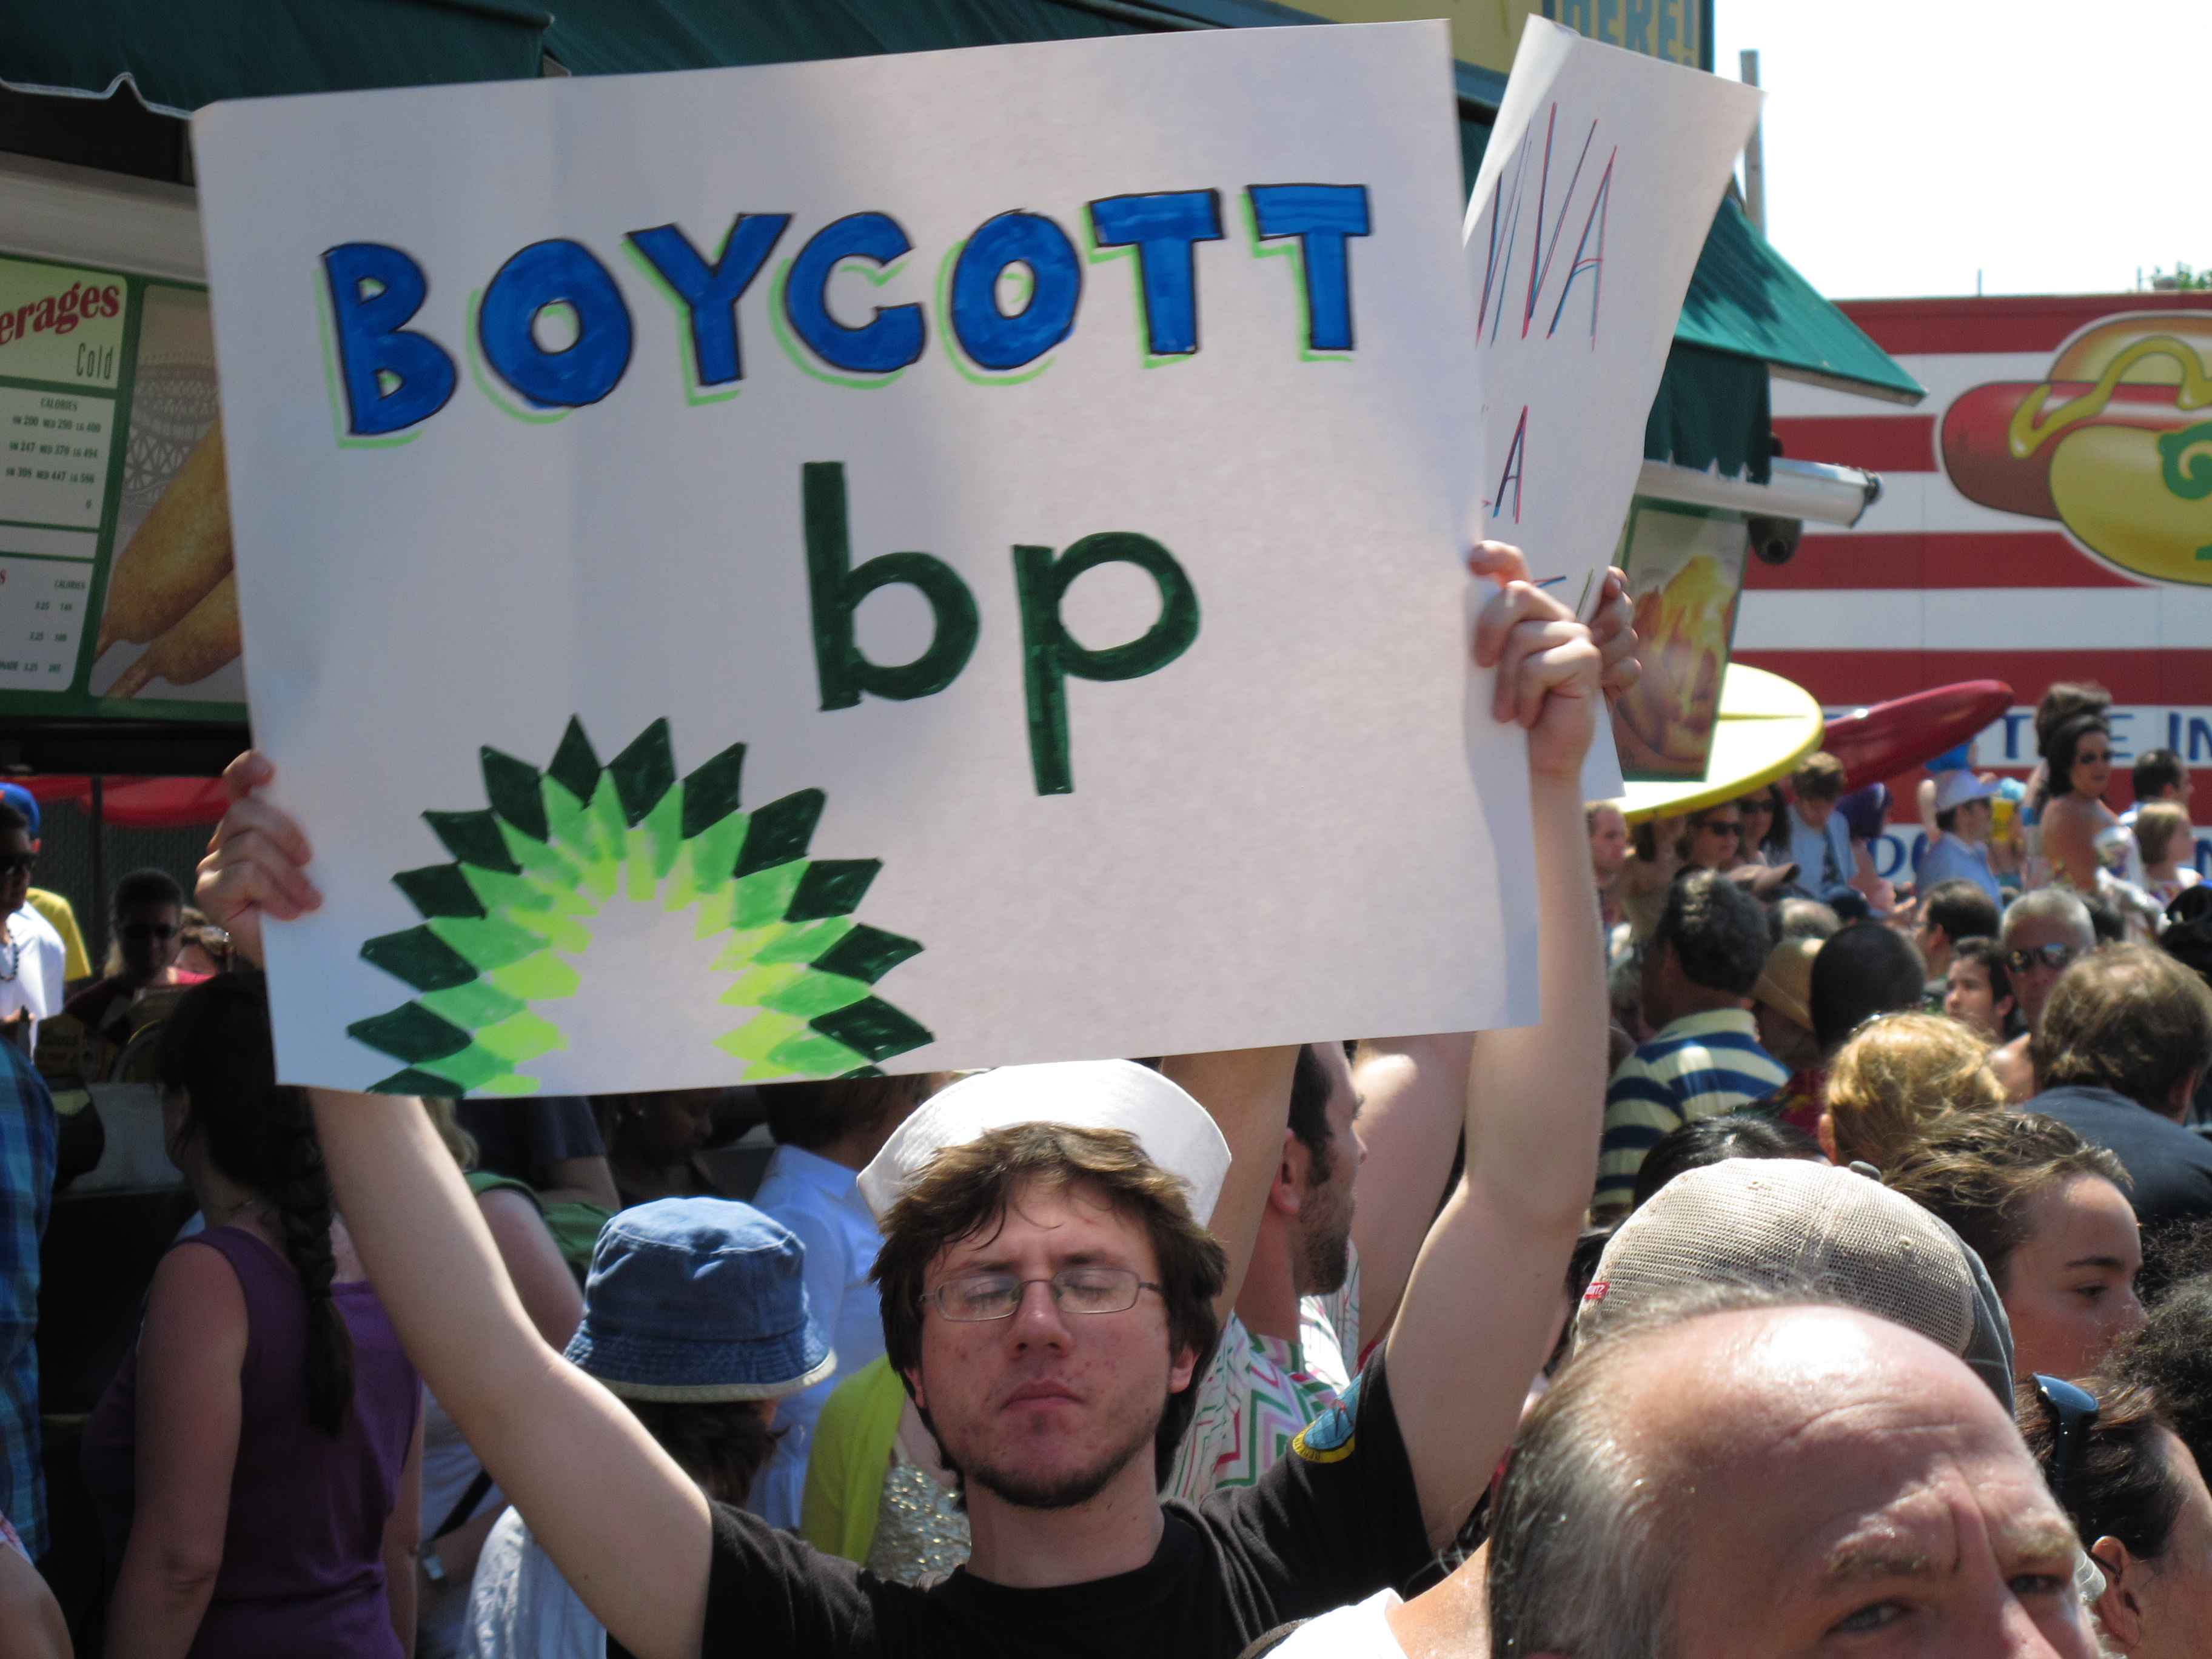 Protester with Boycott BP sign